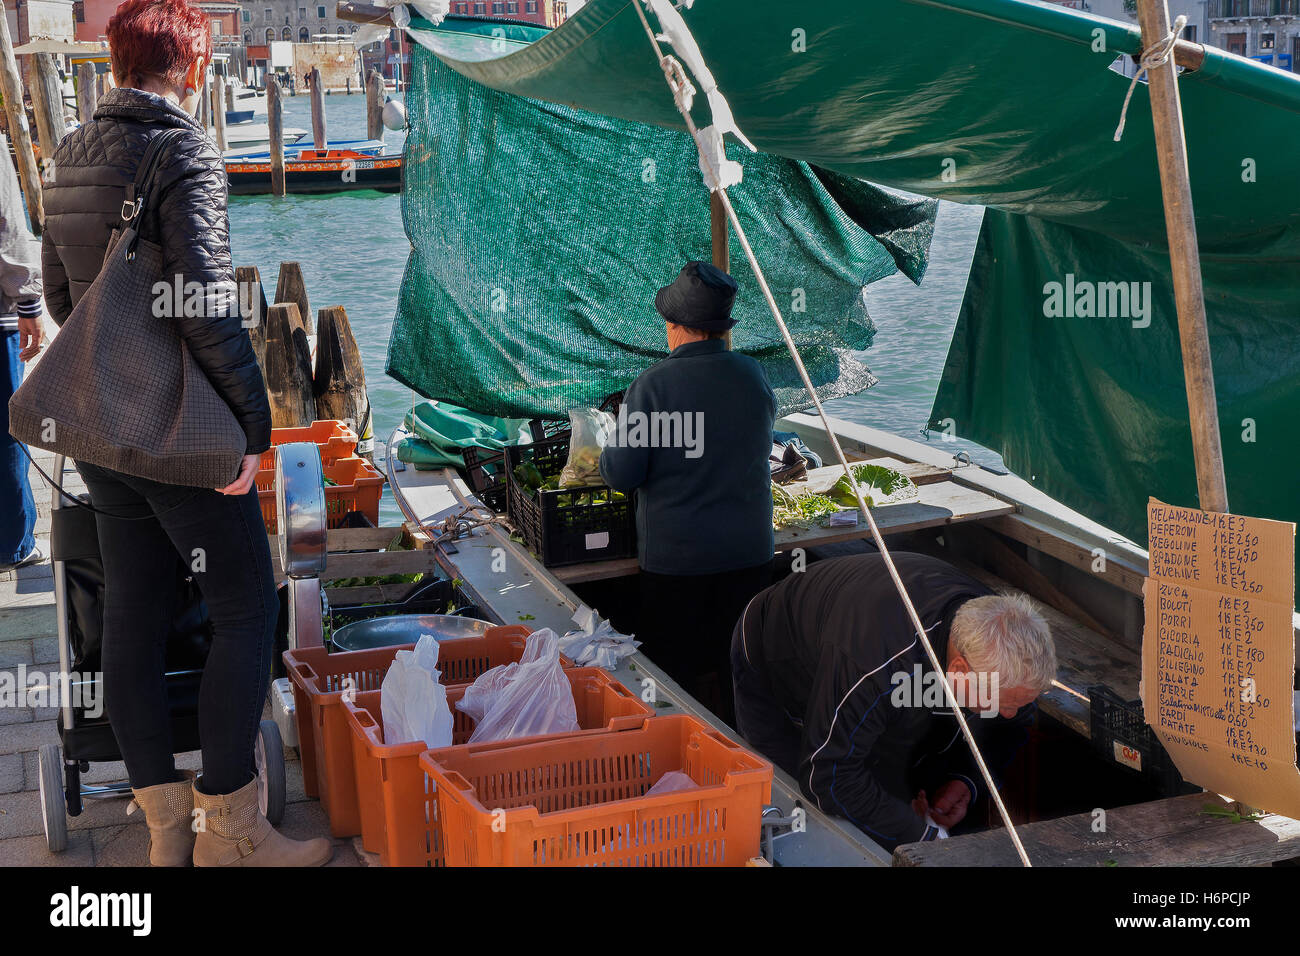 Greengrocers Shop On A Boat, Murano Island, Venice, Italy - Stock Image